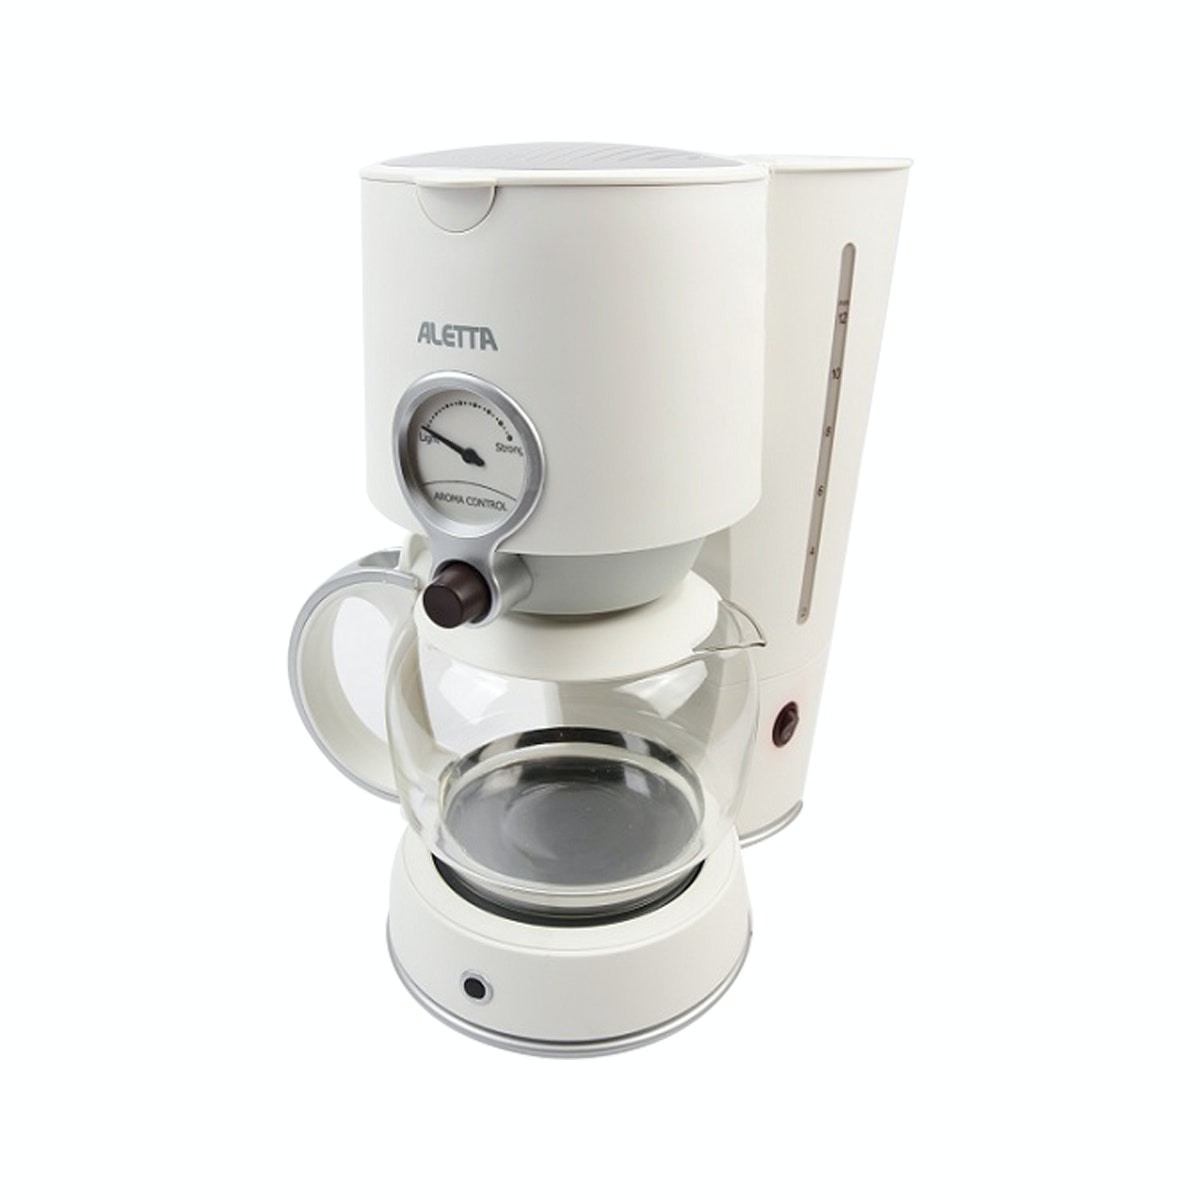 Aletta Coffee Maker